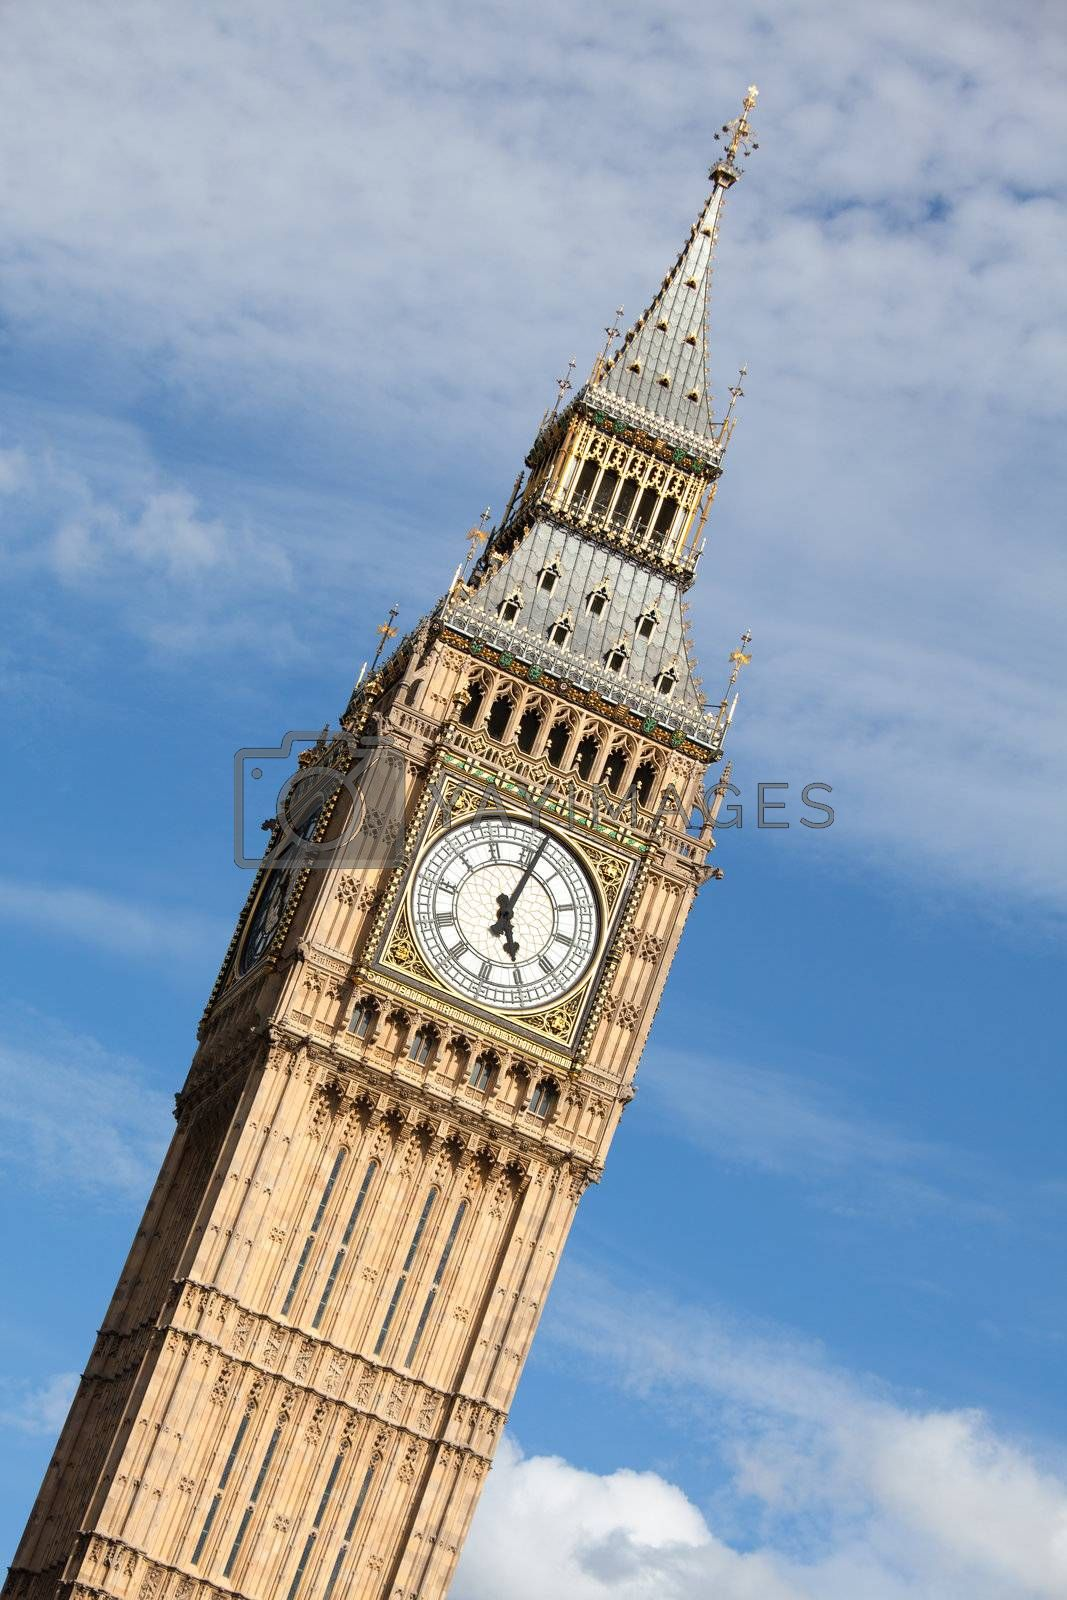 Britain national symbol Clock Big Ben (Elizabeth tower in Gothic Revival style) at 5 o'clock on cloudy sky background in London